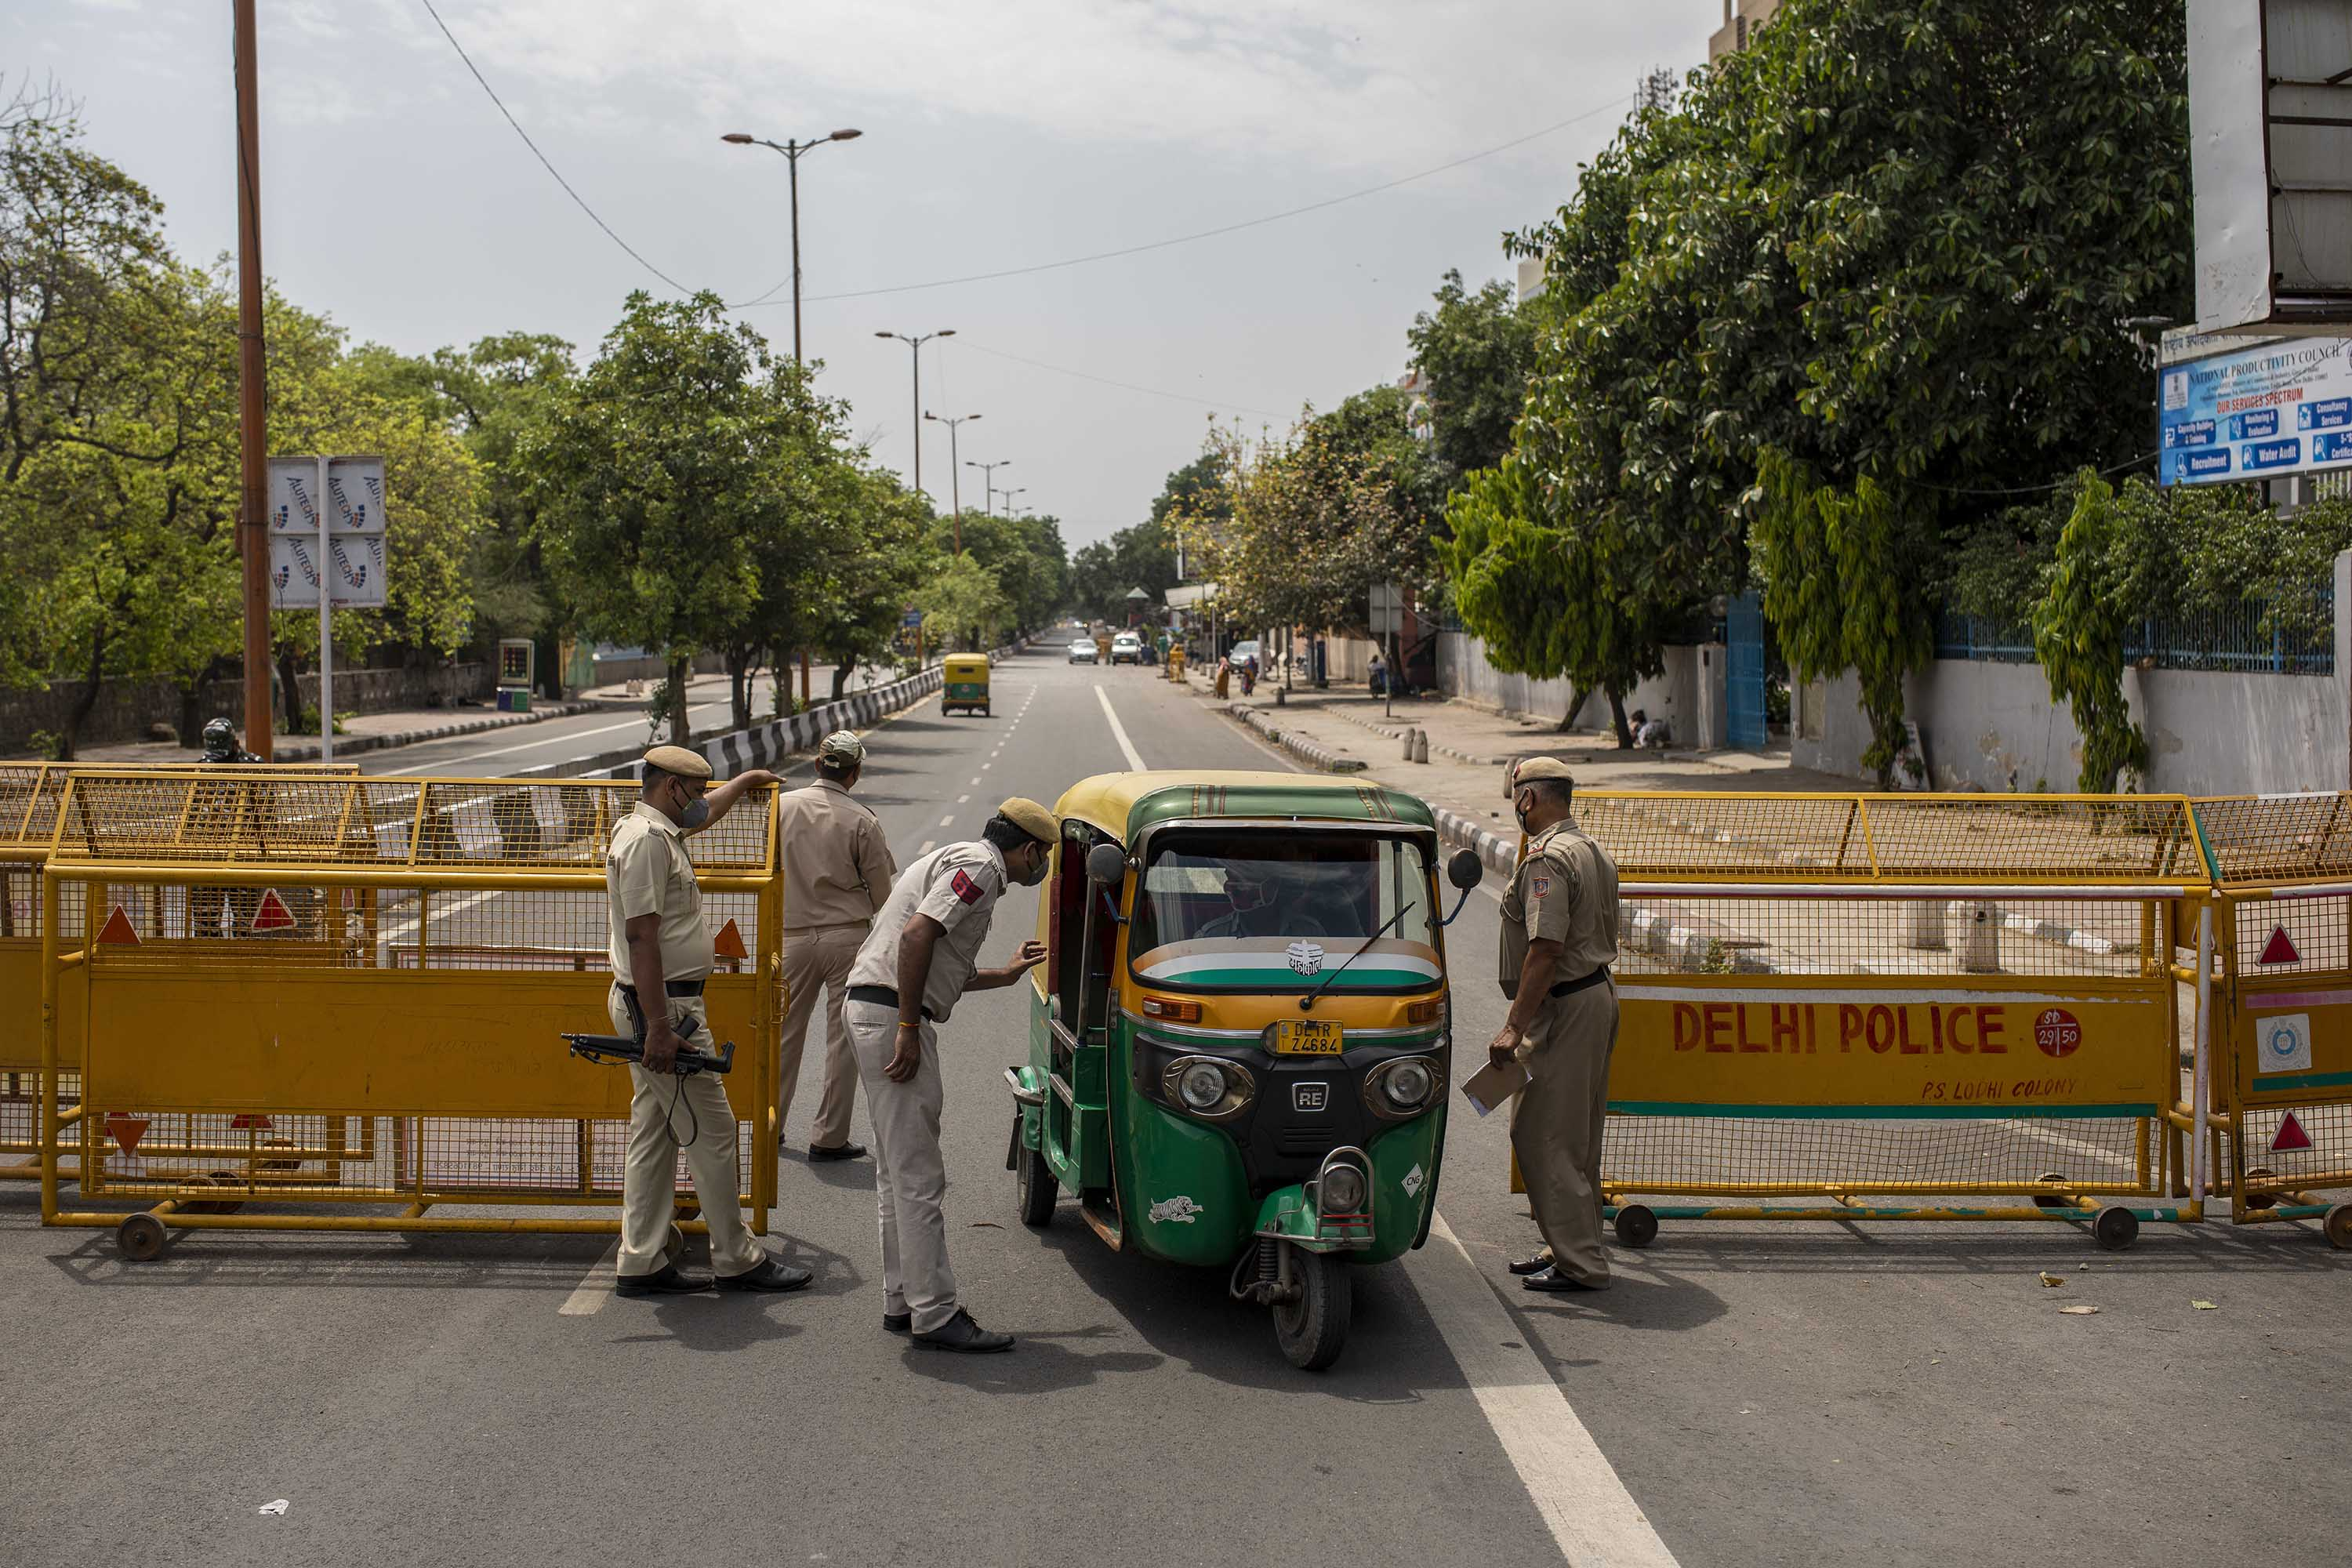 Police officers stop a vehicle at a check point during a weekend lockdown in Delhi, on Saturday, April 17.